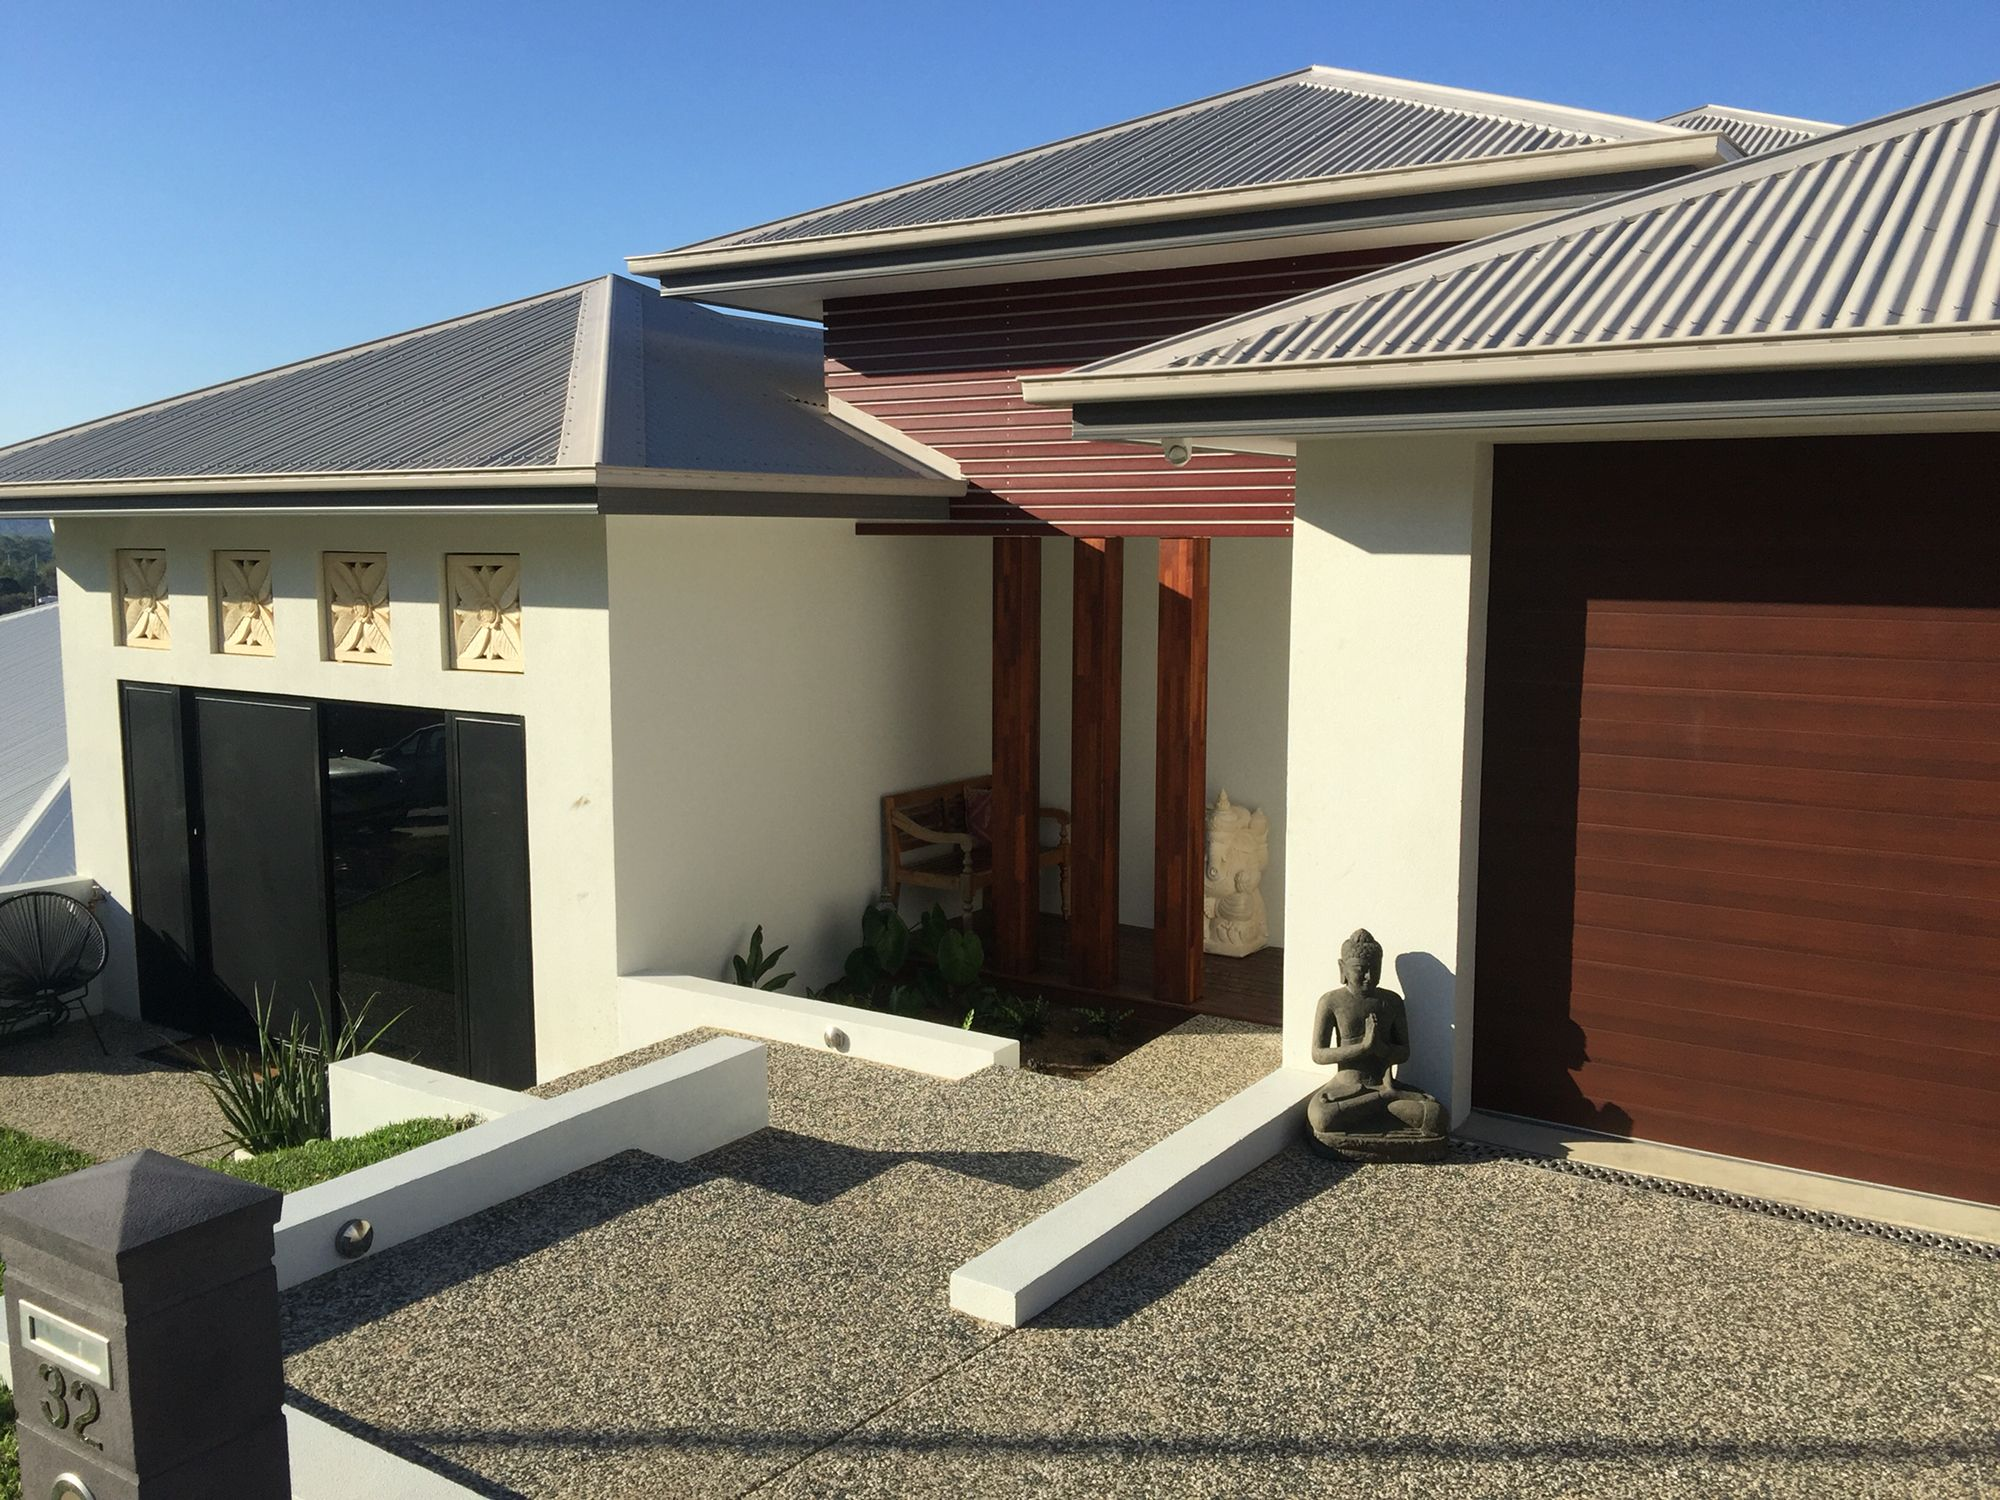 Contemporary exterior innovative designs colorbond contemporary - Colorbond Roofing By Ads Colorbond Roofing Pinterest Weatherboard House Roof Colors And House Facades